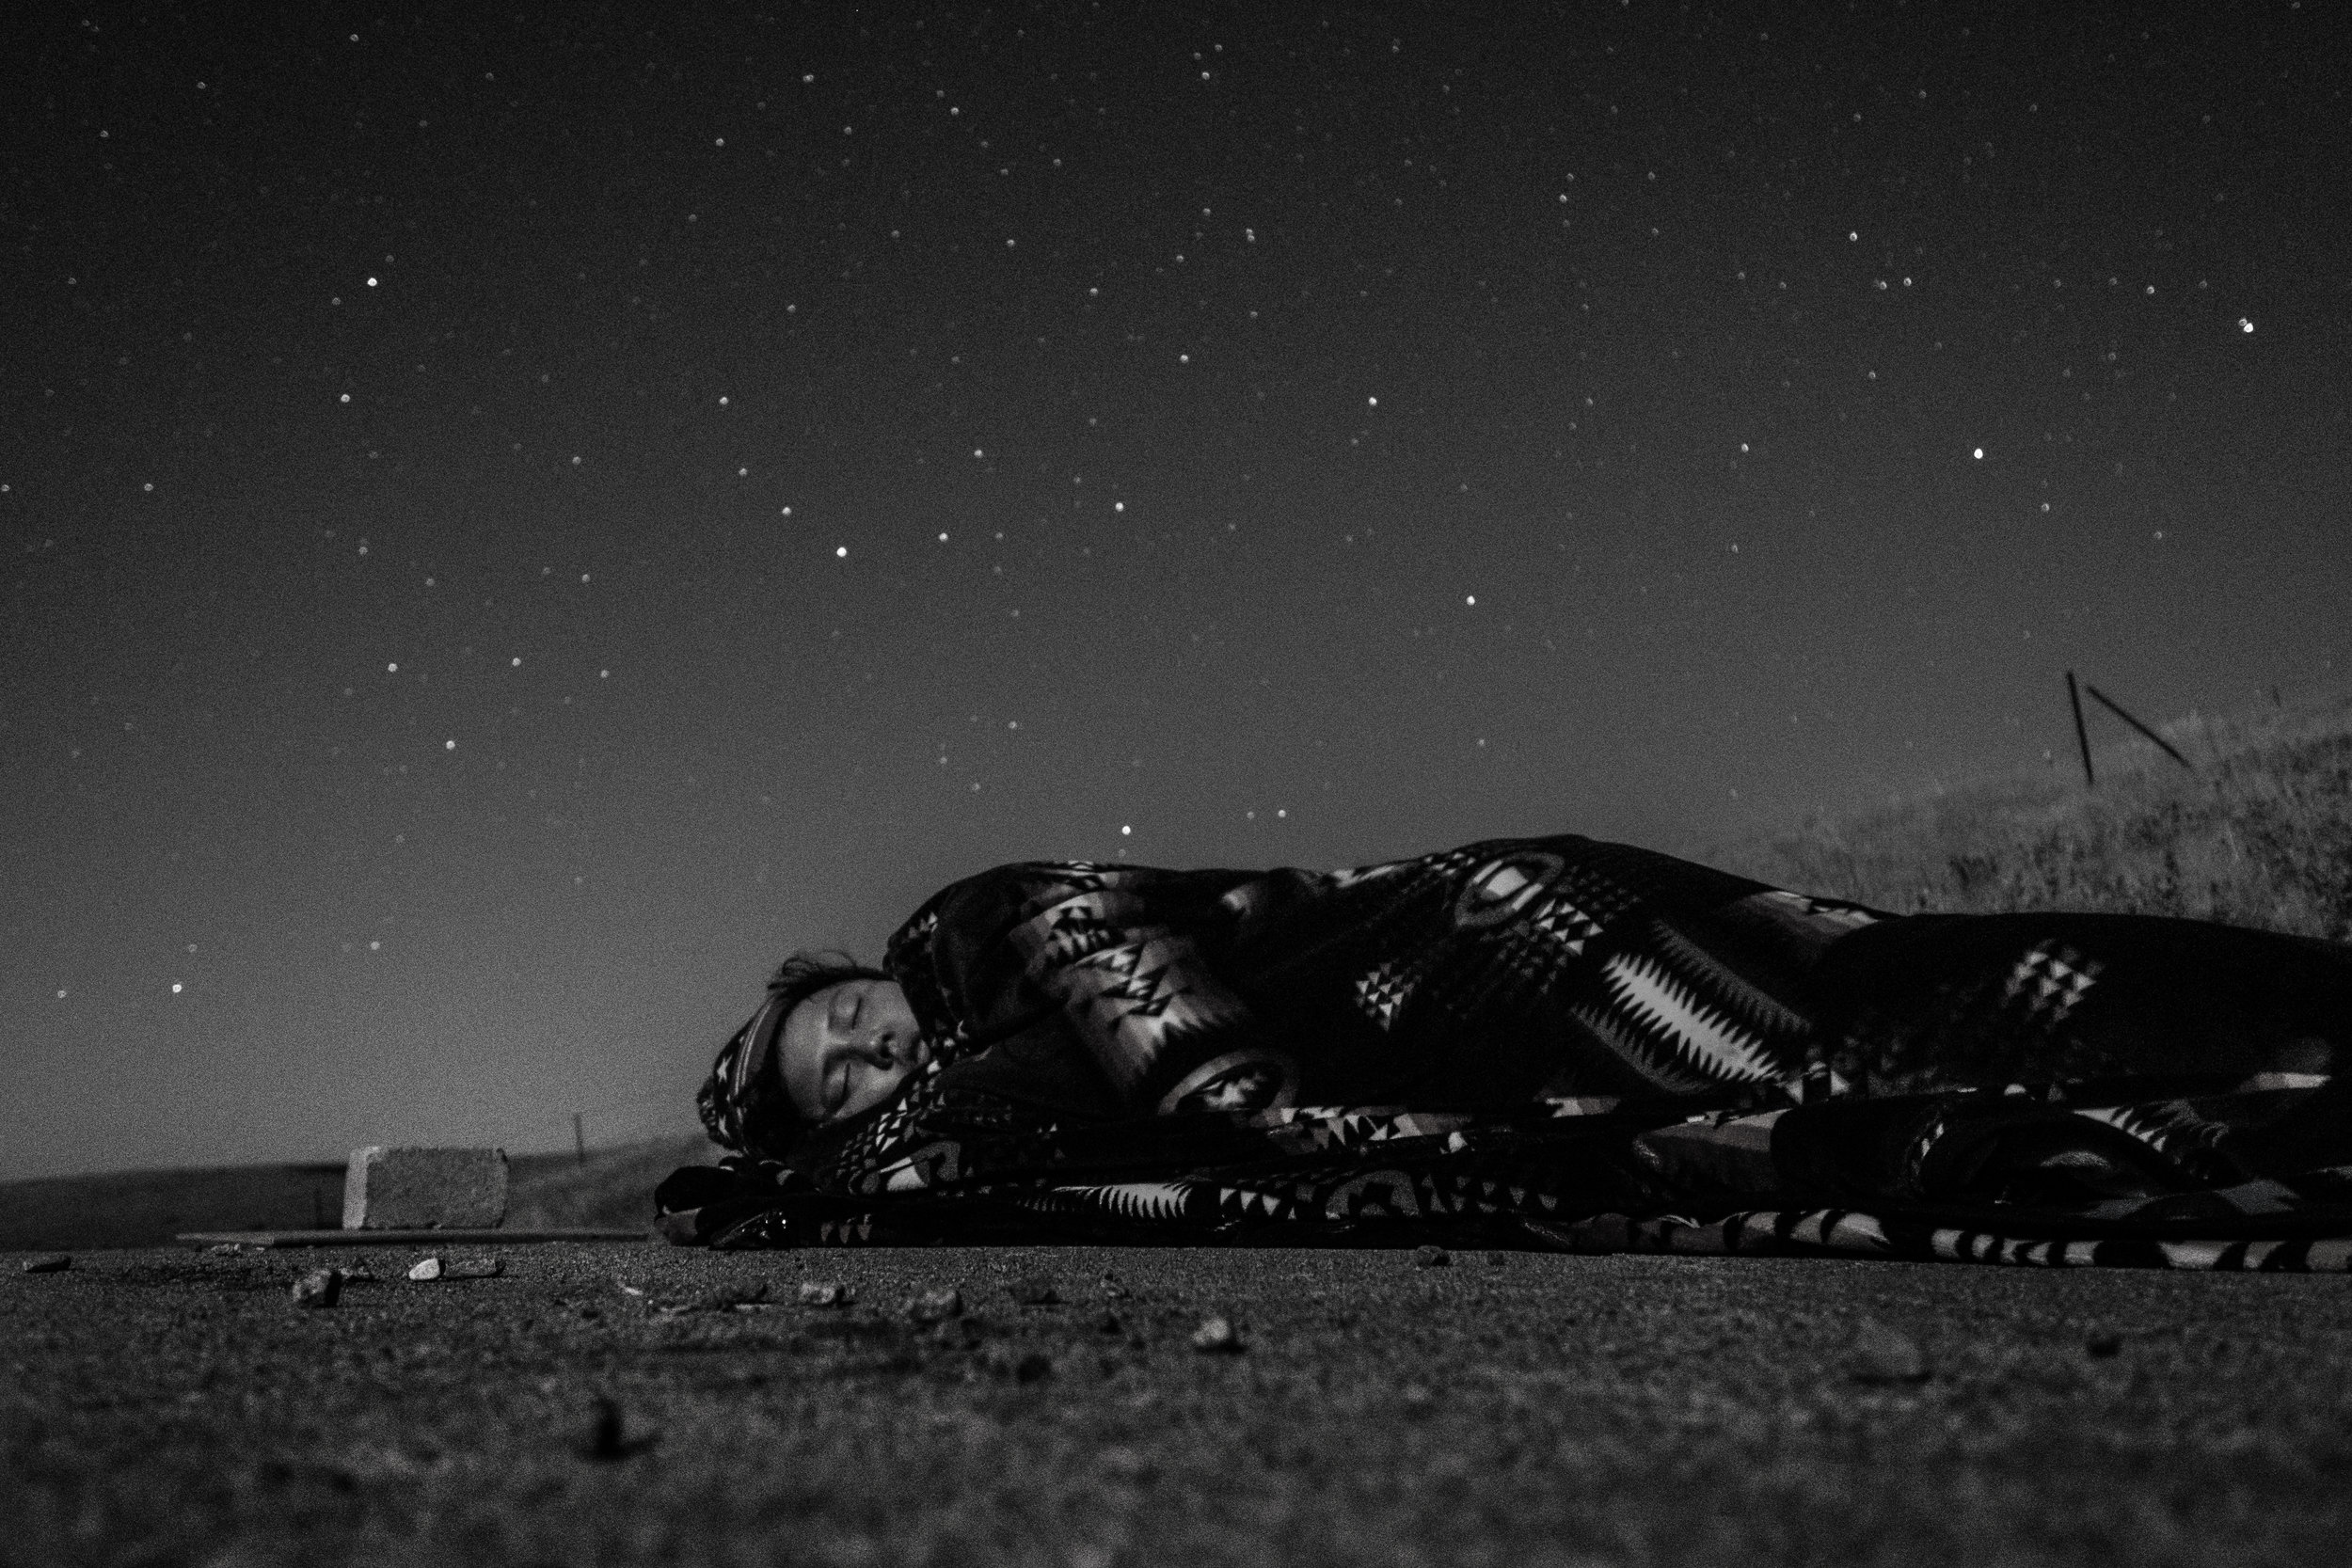 EMILY SCHIFFER |  www.emilyschiffer.com  |  @emilyschiffer   Jordan, asleep under the stars on our storm shelter/darkroom roof on the Cheyenne River Reservation, after printing in the darkroom until 3 a.m.   [ The Washington Post ]